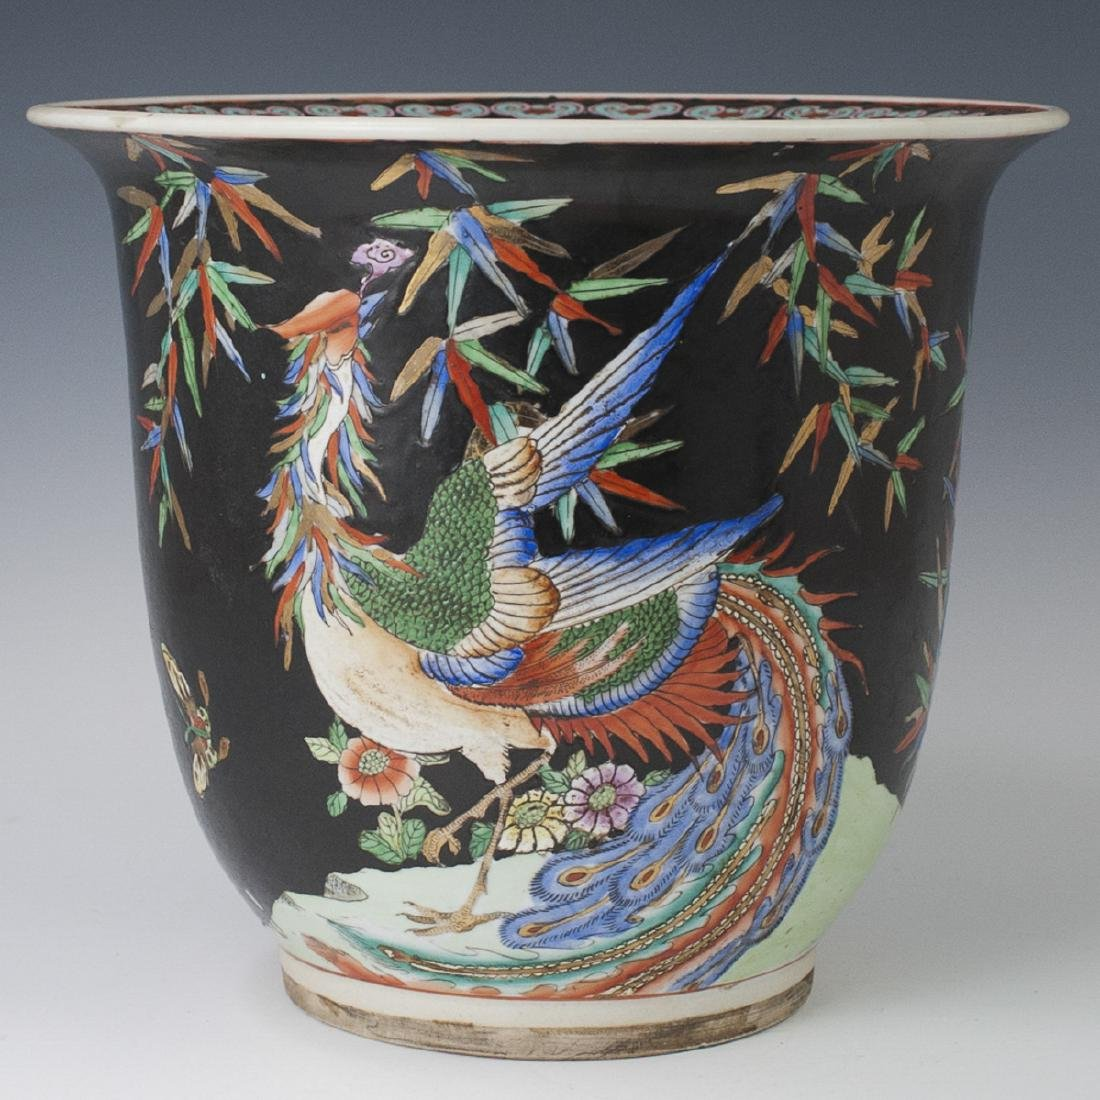 Chinese Famille Noire Porcelain Fishbowl